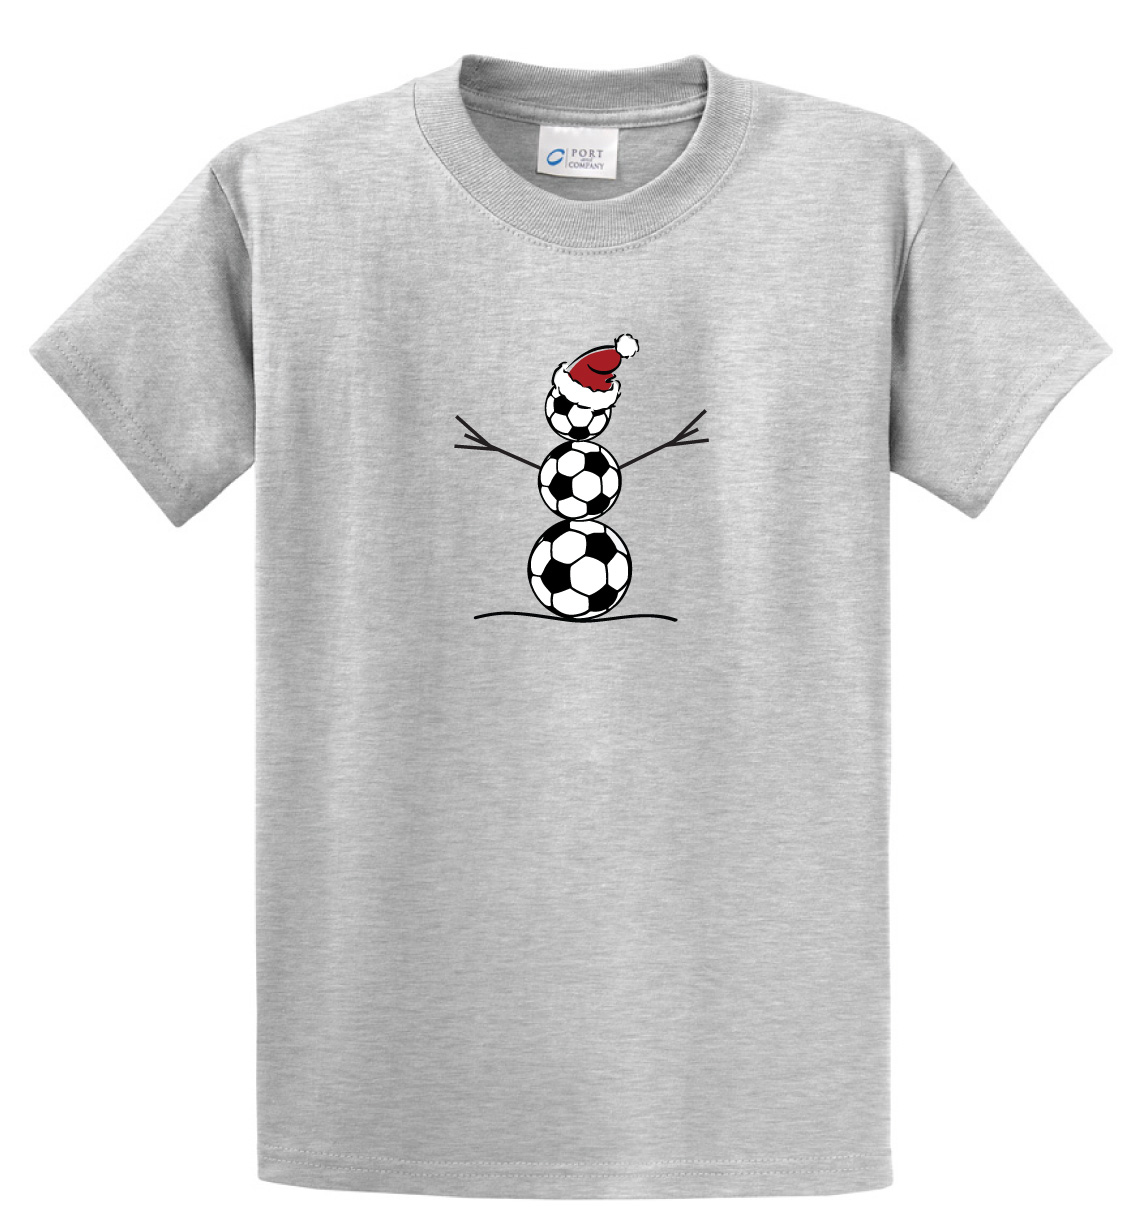 Soccer Snowman short sleeve tshirt in ash by Code Four Athletics